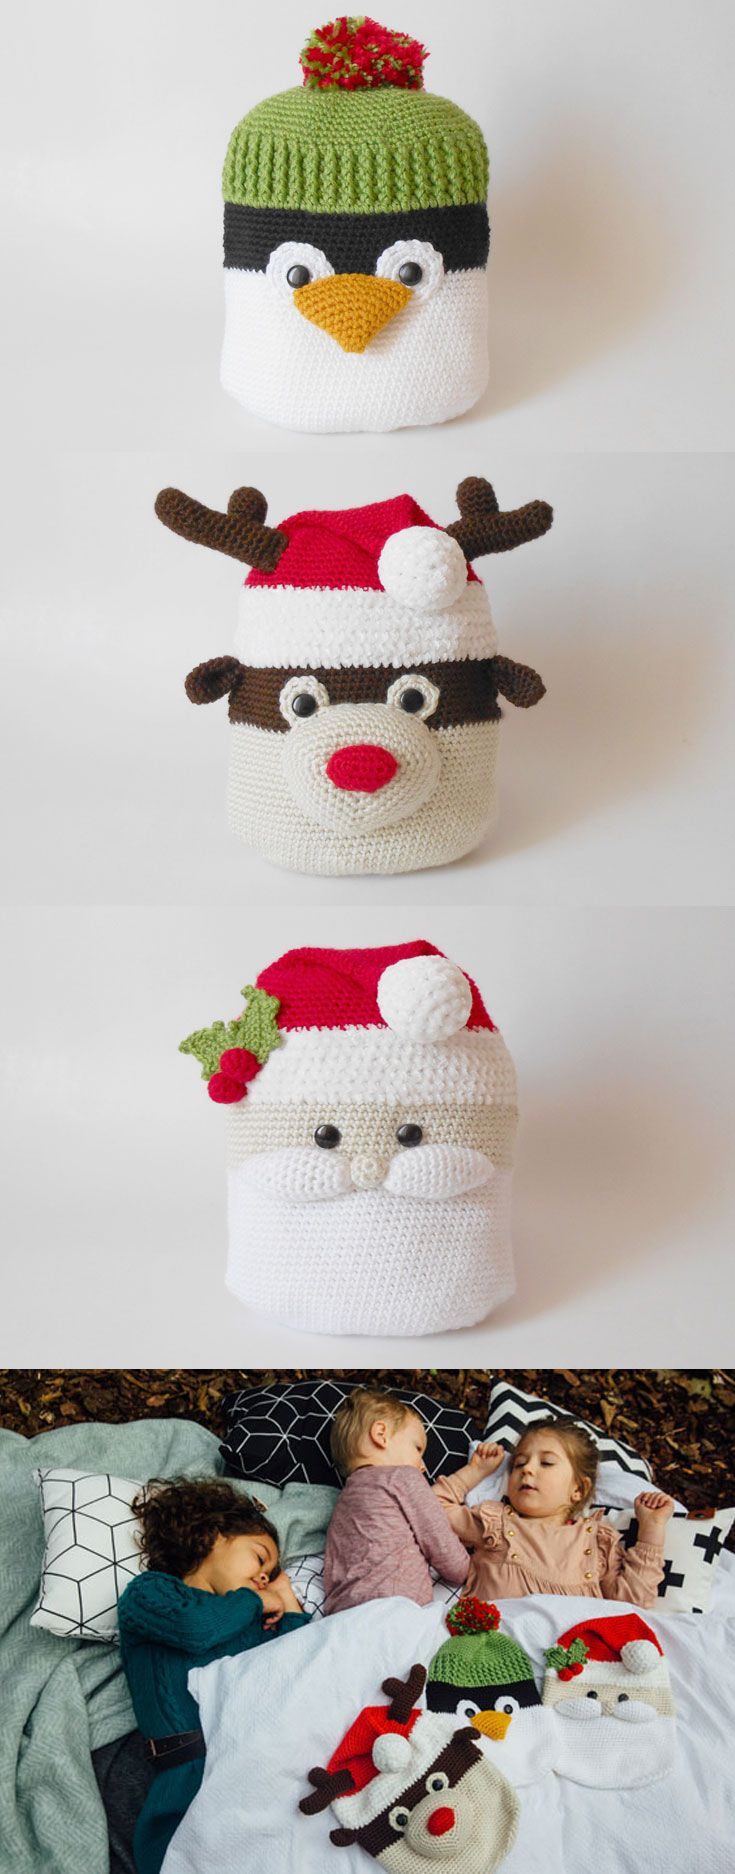 Christmas Pajamas' Keepers, a practical and decorative bag for the day and a cute companion for night time. A child's life is filled to the brim with different activities and outings, and what better way to keep it all organized than with cute and soft amigurumi bags?